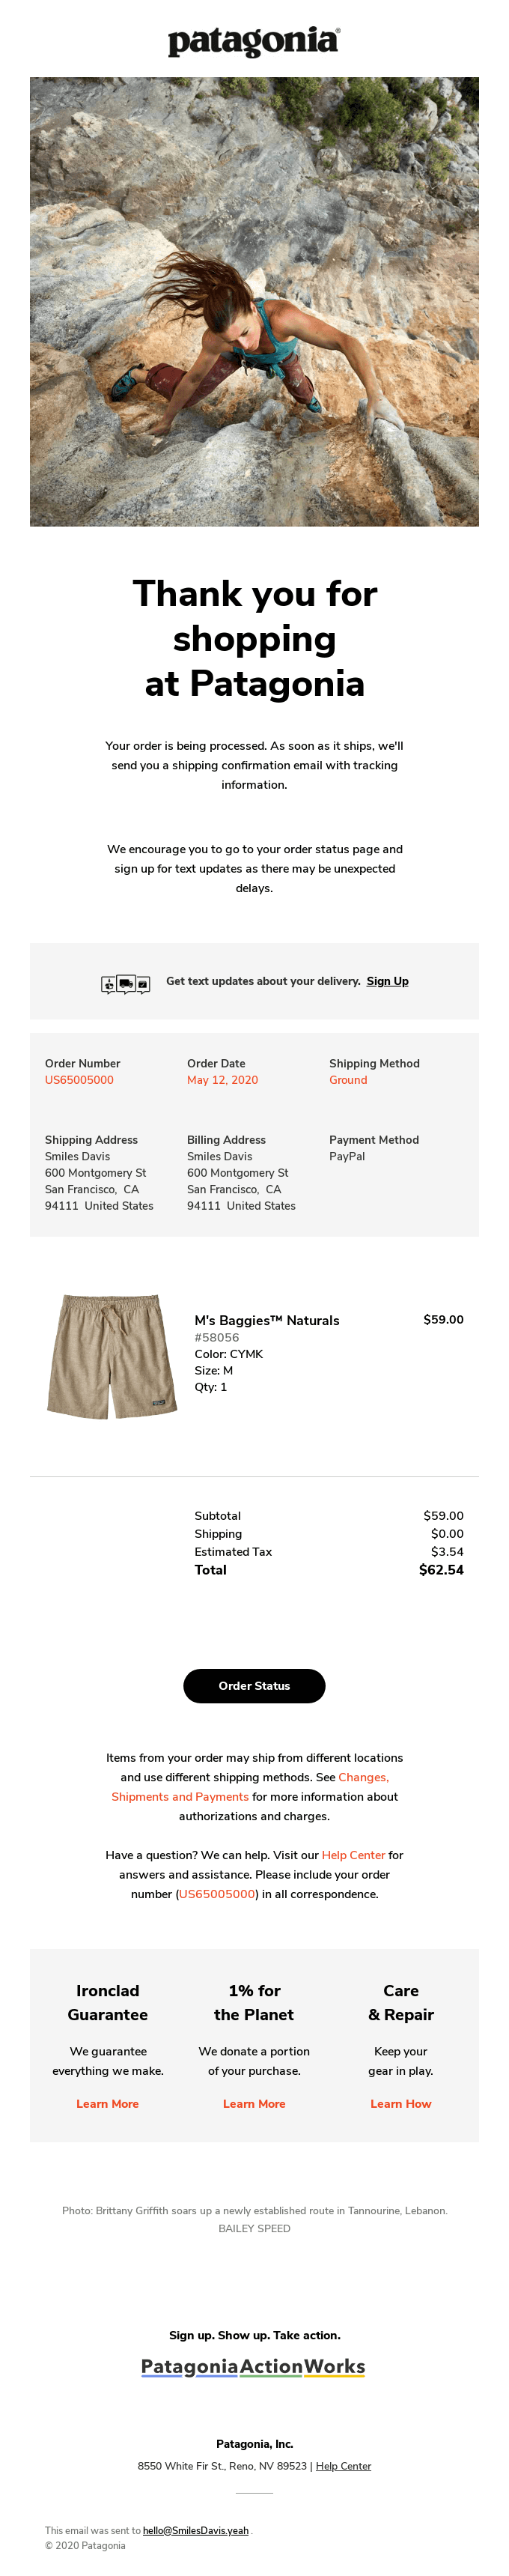 Patagonia order email. Text reads: Thank you for shopping at Patagonia. Your order is on its way.